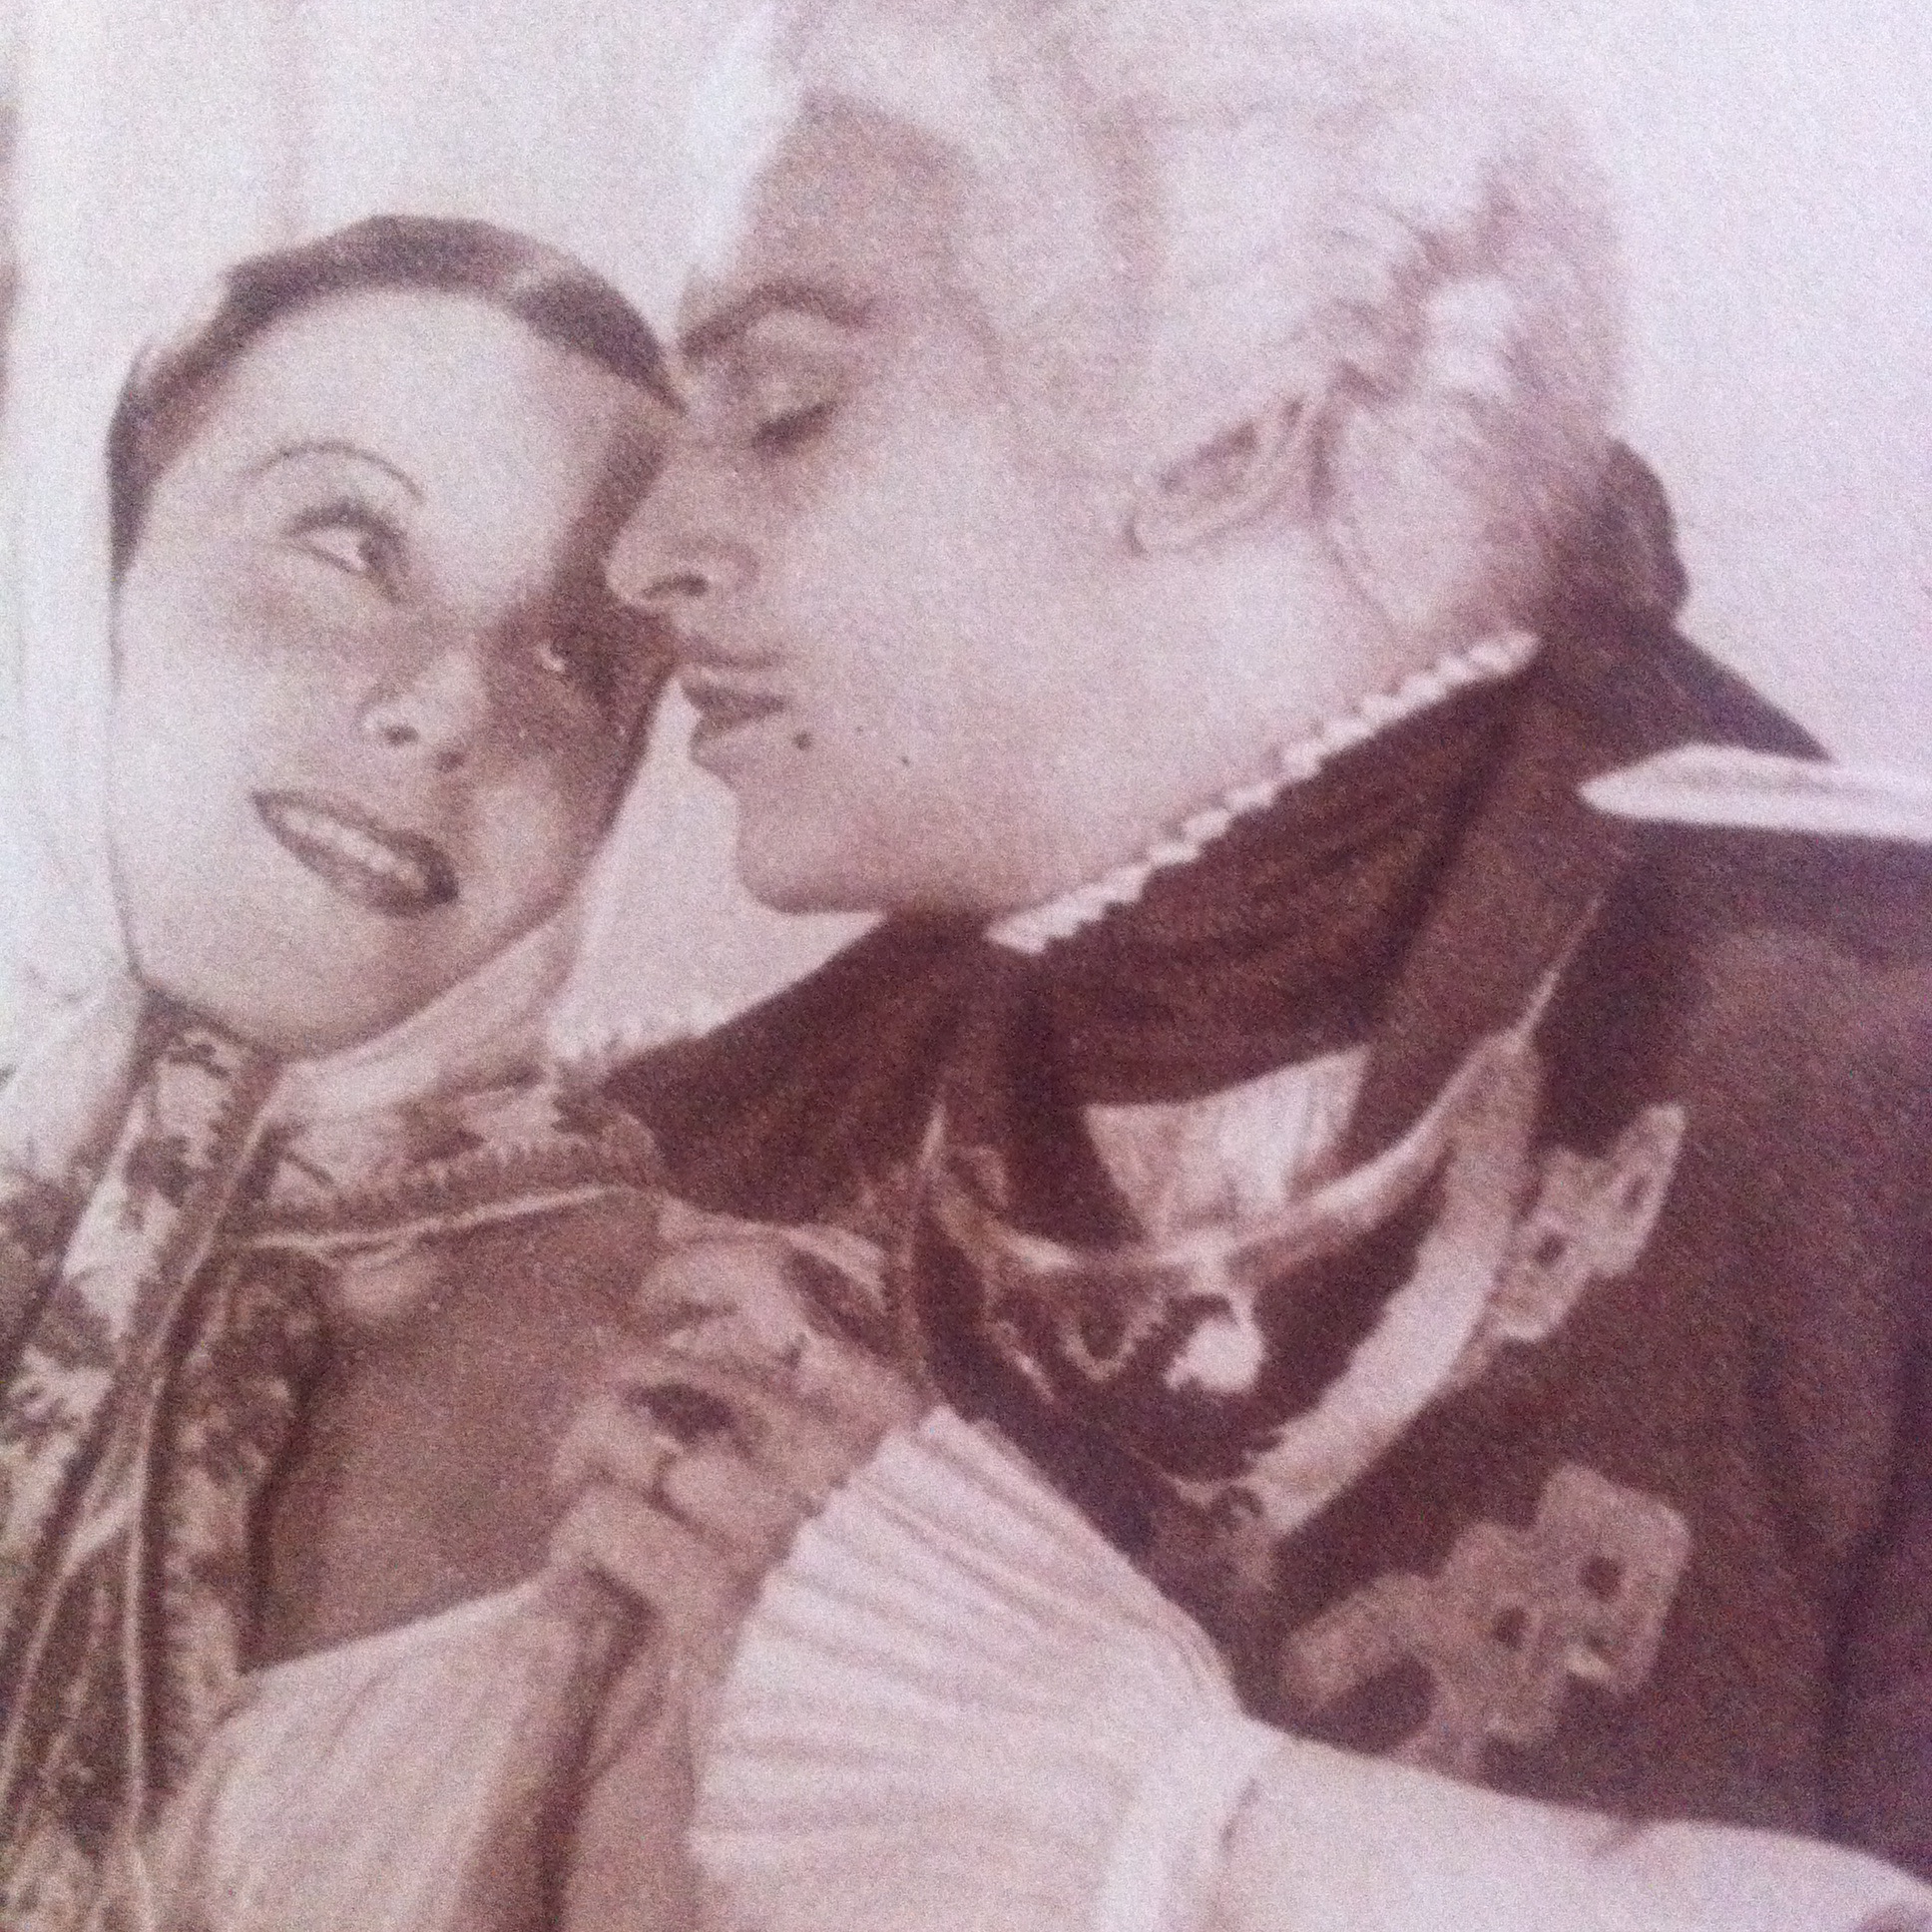 Douglas Fairbanks Jr. and Joan Gardner in The Rise of Catherine the Great (1934)